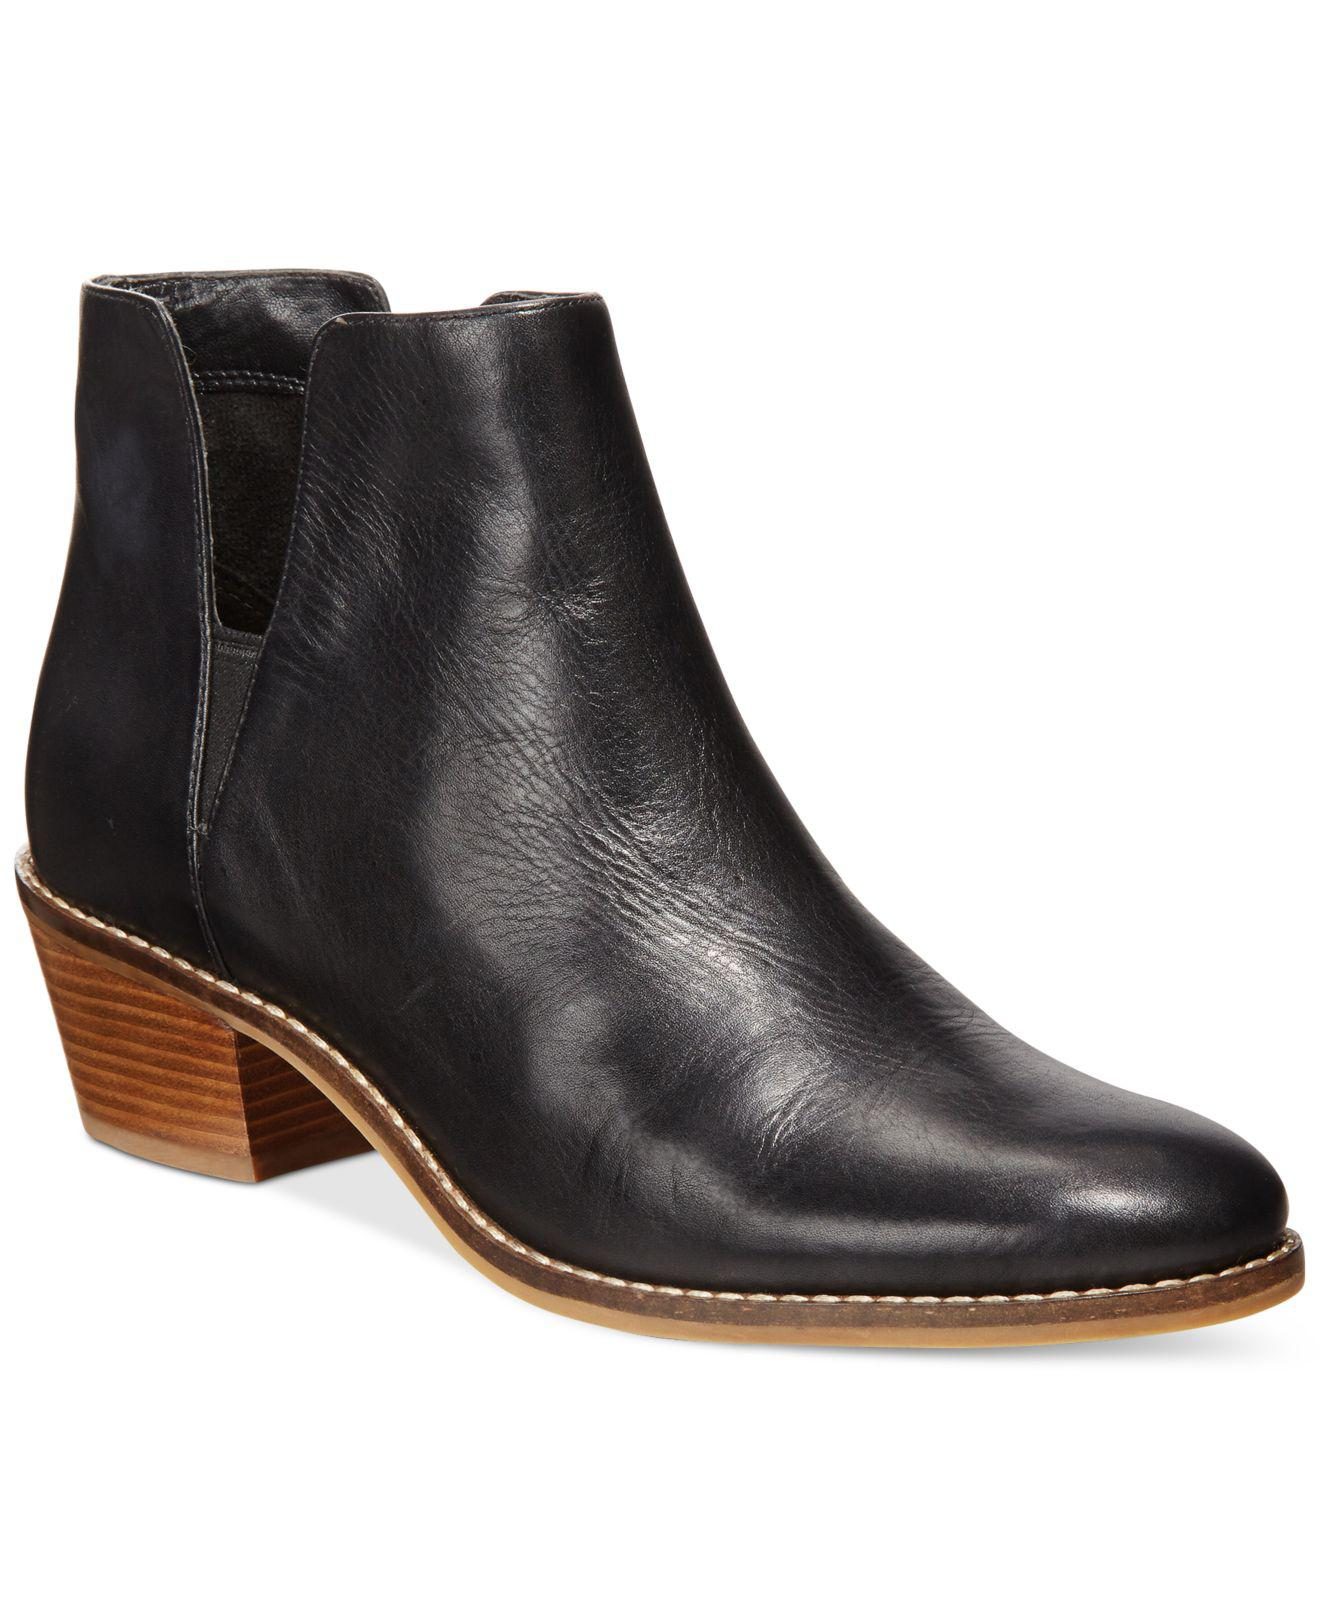 discount 2014 unisex new styles cheap online Cole Haan Embossed Ankle Boots extremely cheap price QElJKy9